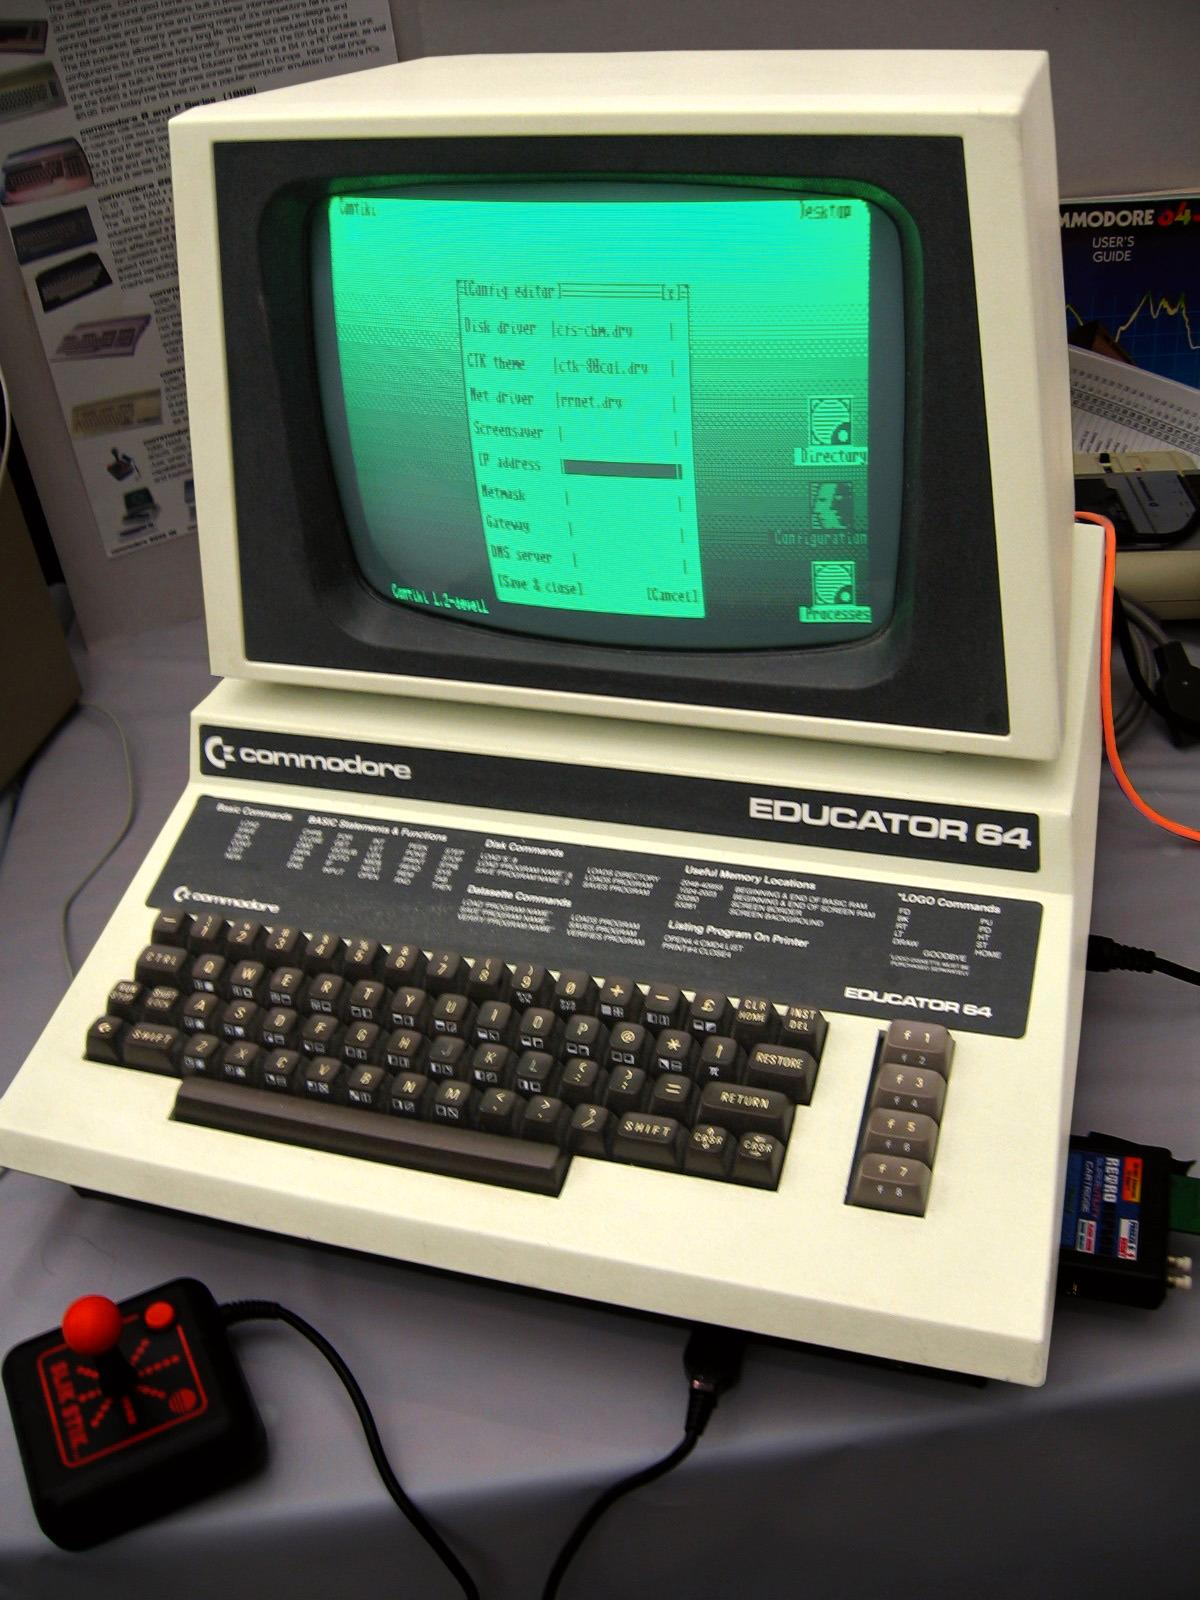 Commodore Educator 64, her med operativsystemet Contiki. Foto: Marcin Wichary / Wikimedia Commons